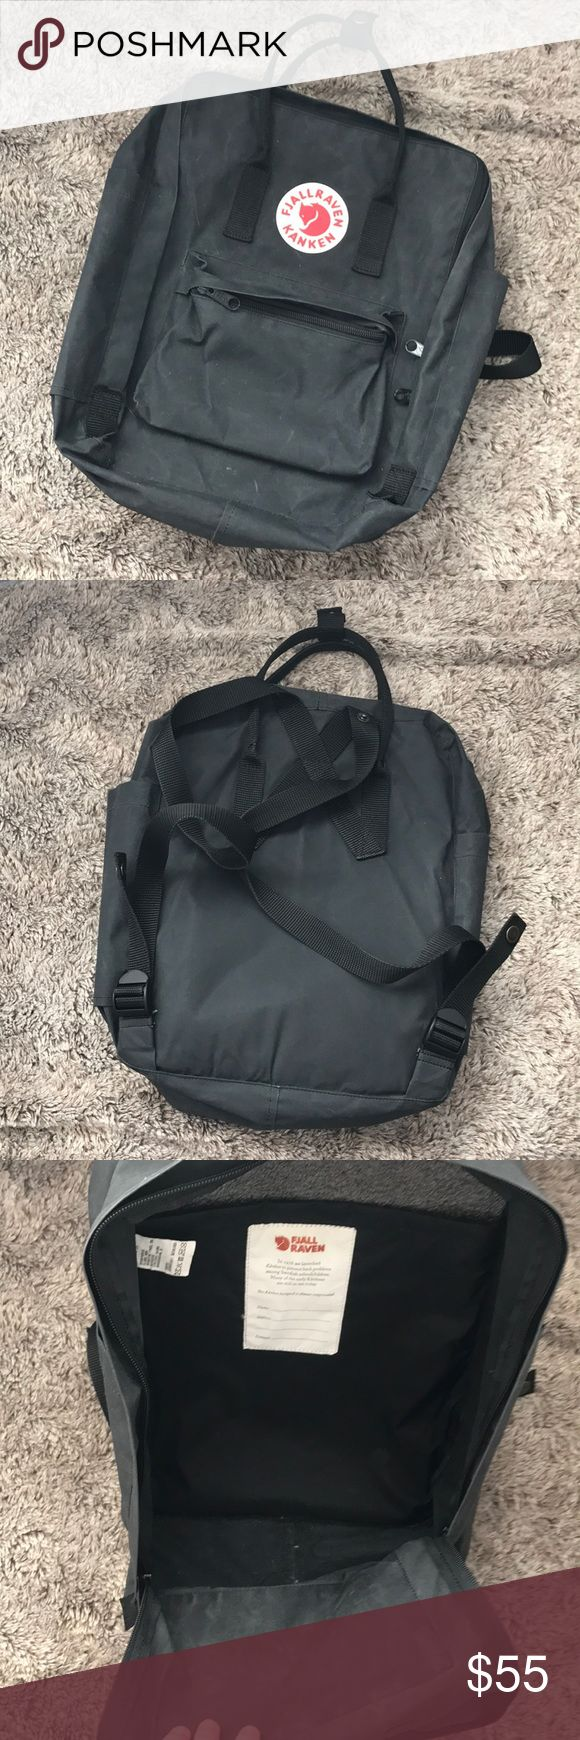 """Black Kanken Backpack by Fjallraven Black Kanken Backpack by Fjallraven. Great Used condition. Authentic- purchased at Nordstrom about a year ago. No trades. Open to offers through the offer button 🎉 measurements (according to the Nordstrom website) are 10 ¼""""W x 15""""H x 5""""D Fjallraven Bags Backpacks"""